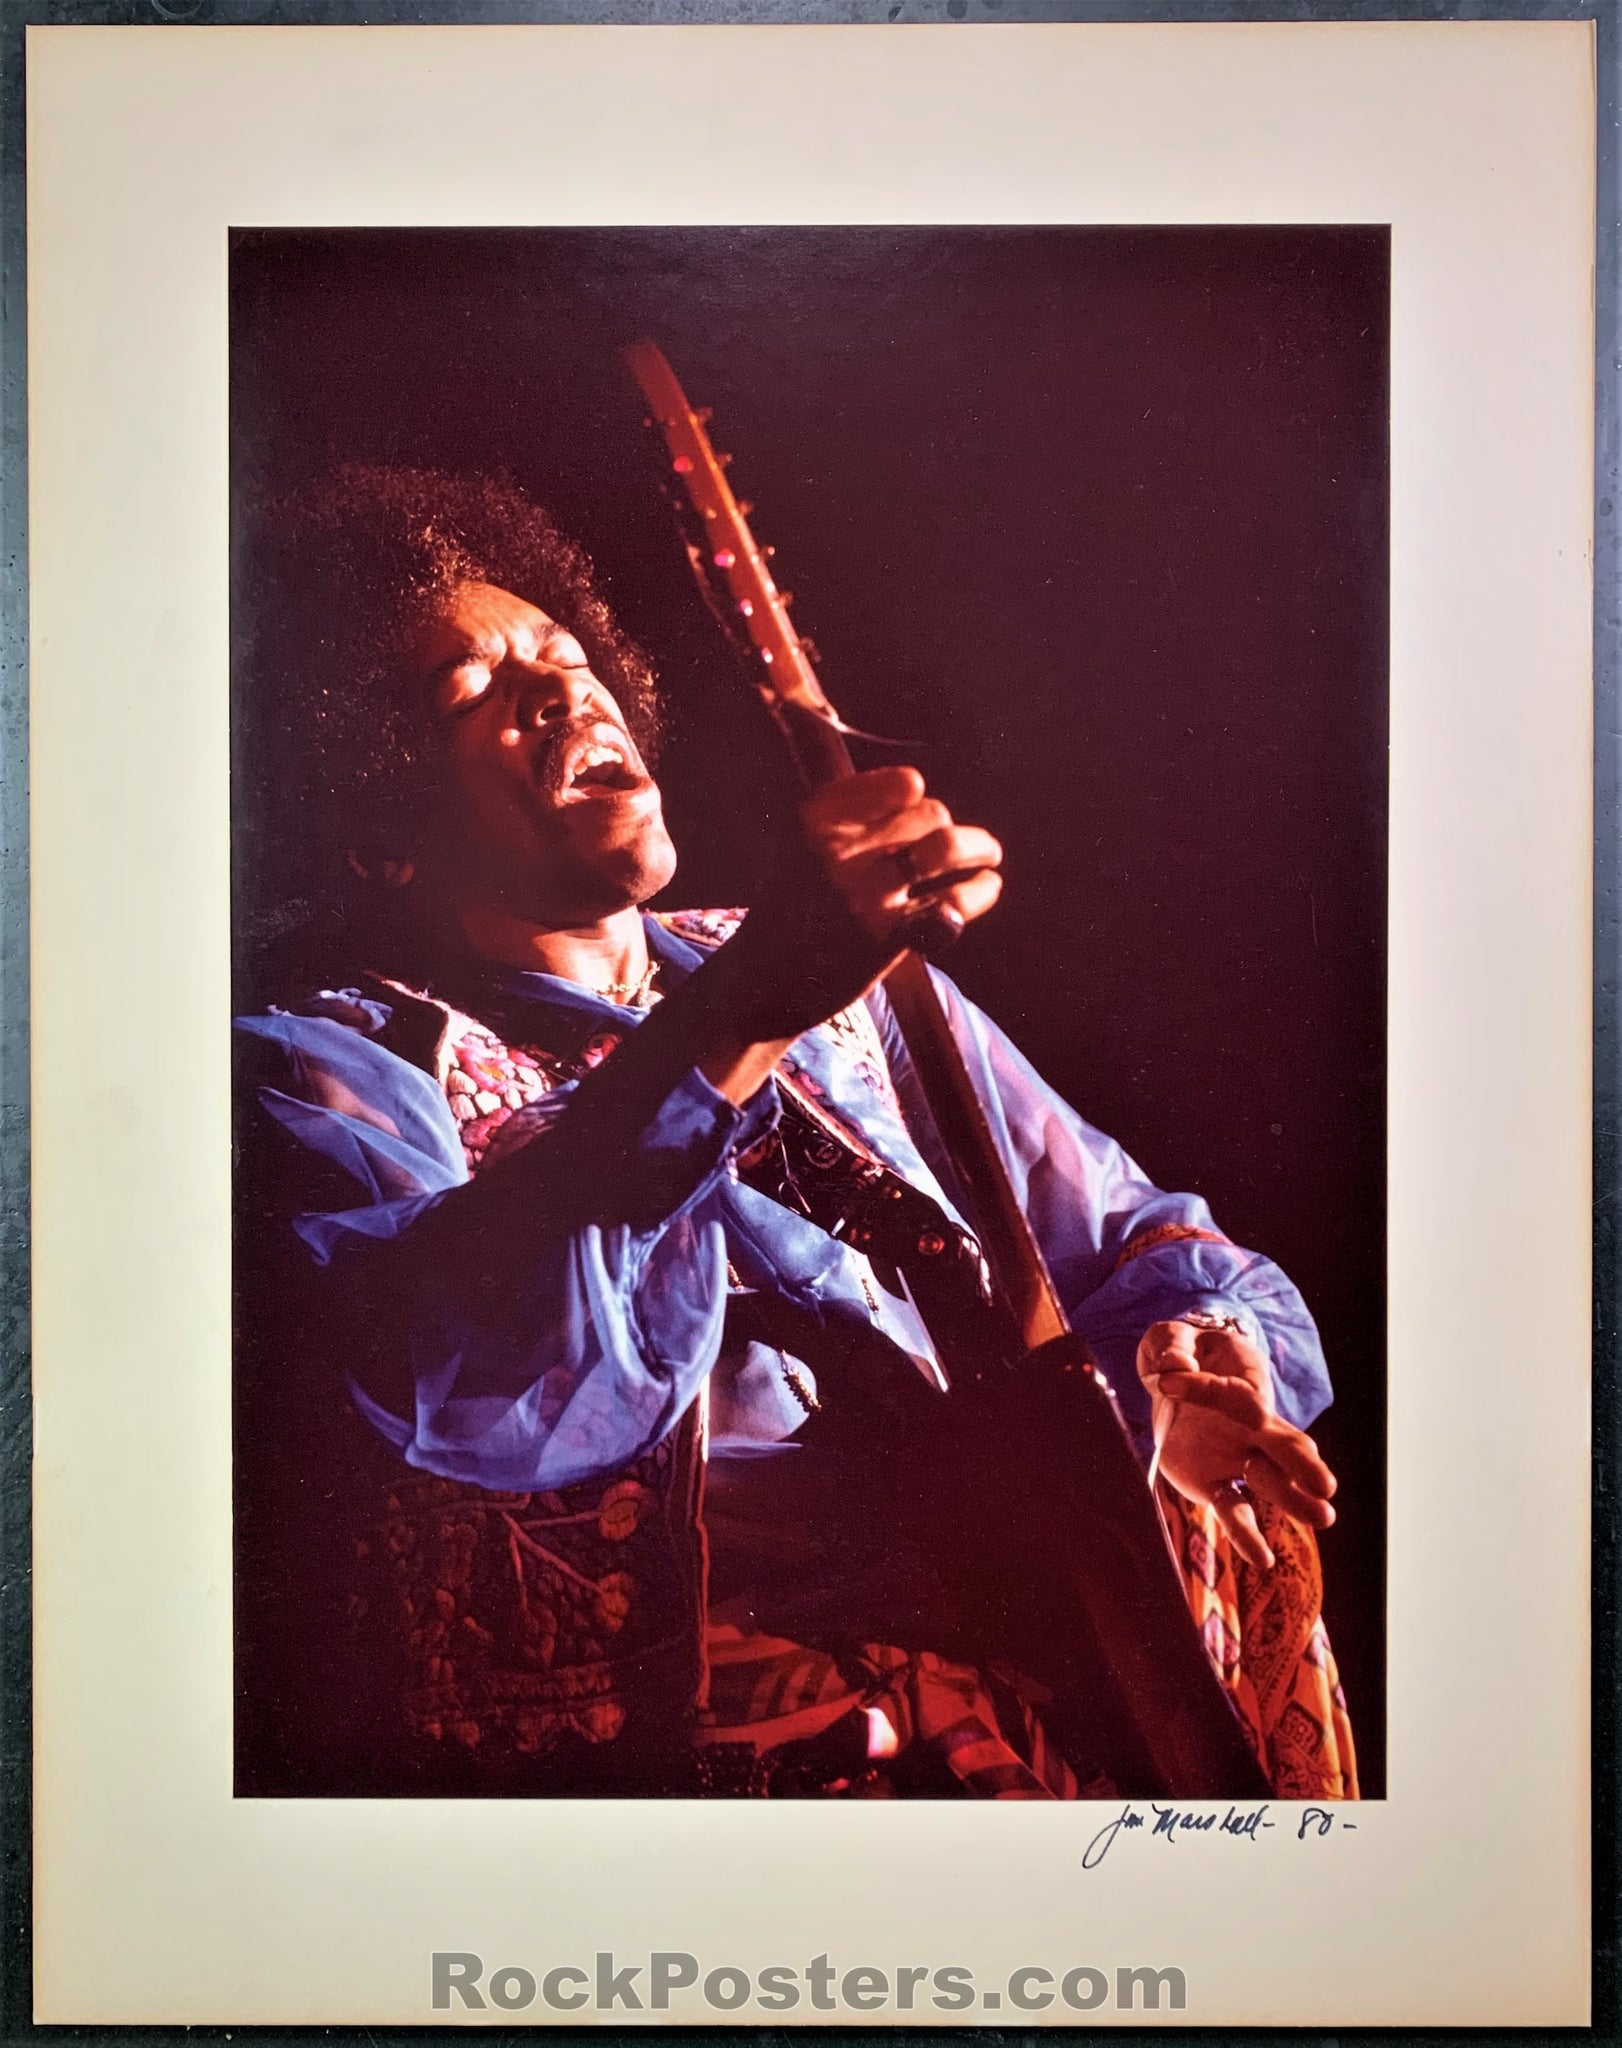 Jimi Hendrix - Live 1960s Concert Photograph - Jim Marshall Signed - Excellent